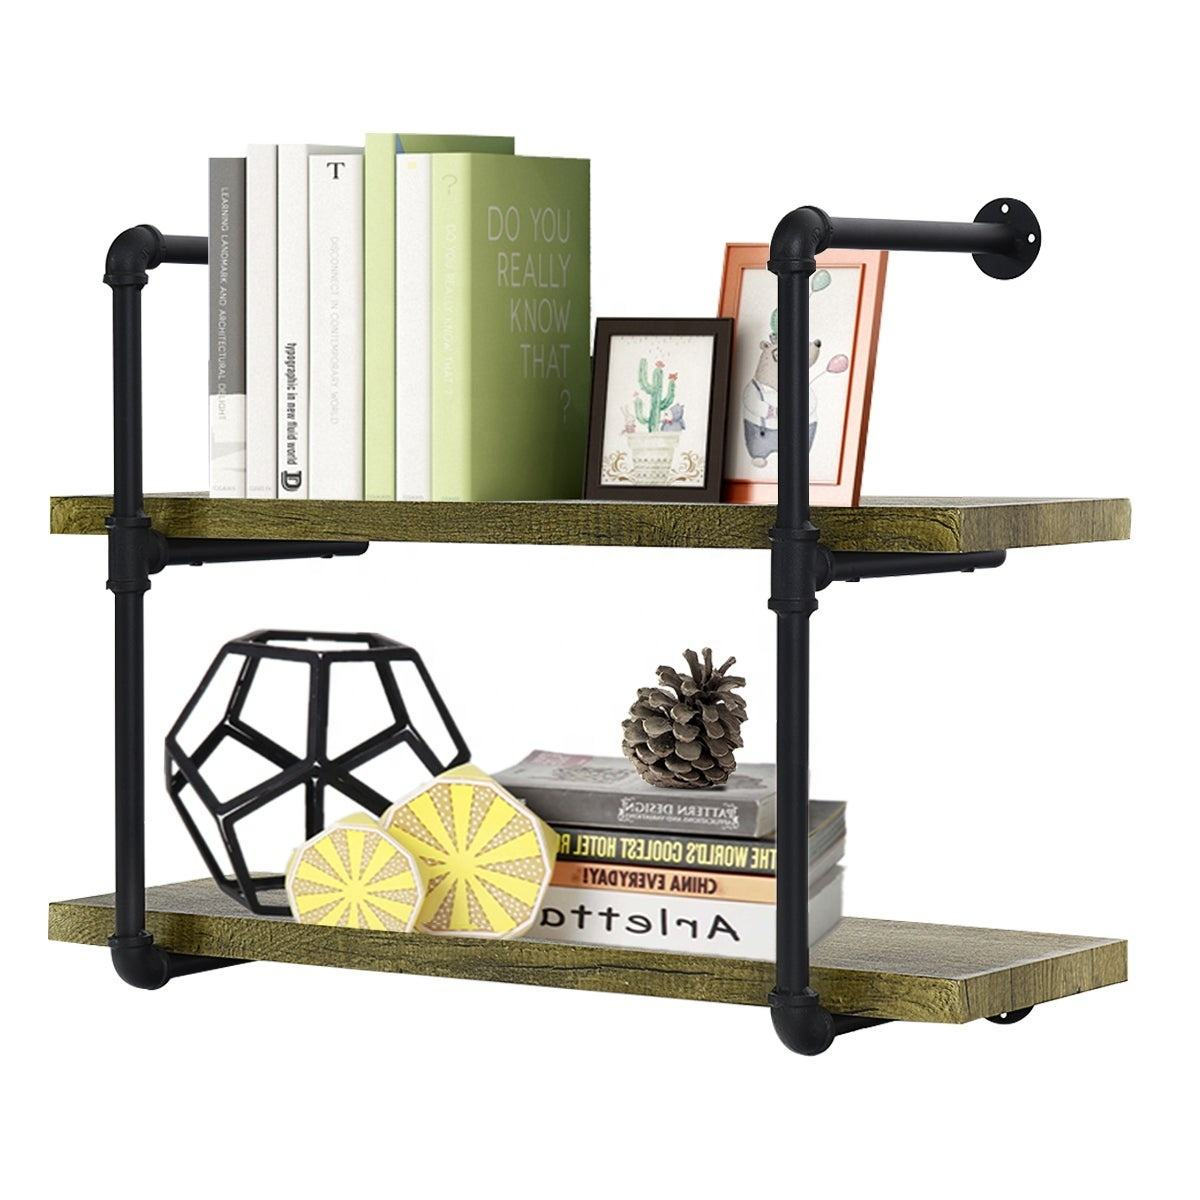 Pipe Shelves 2 Tier Industrial Shelf with Wood & Metal Hanging Wall Shelving for Living Room Coffee Shops Storage Pipe Shelves